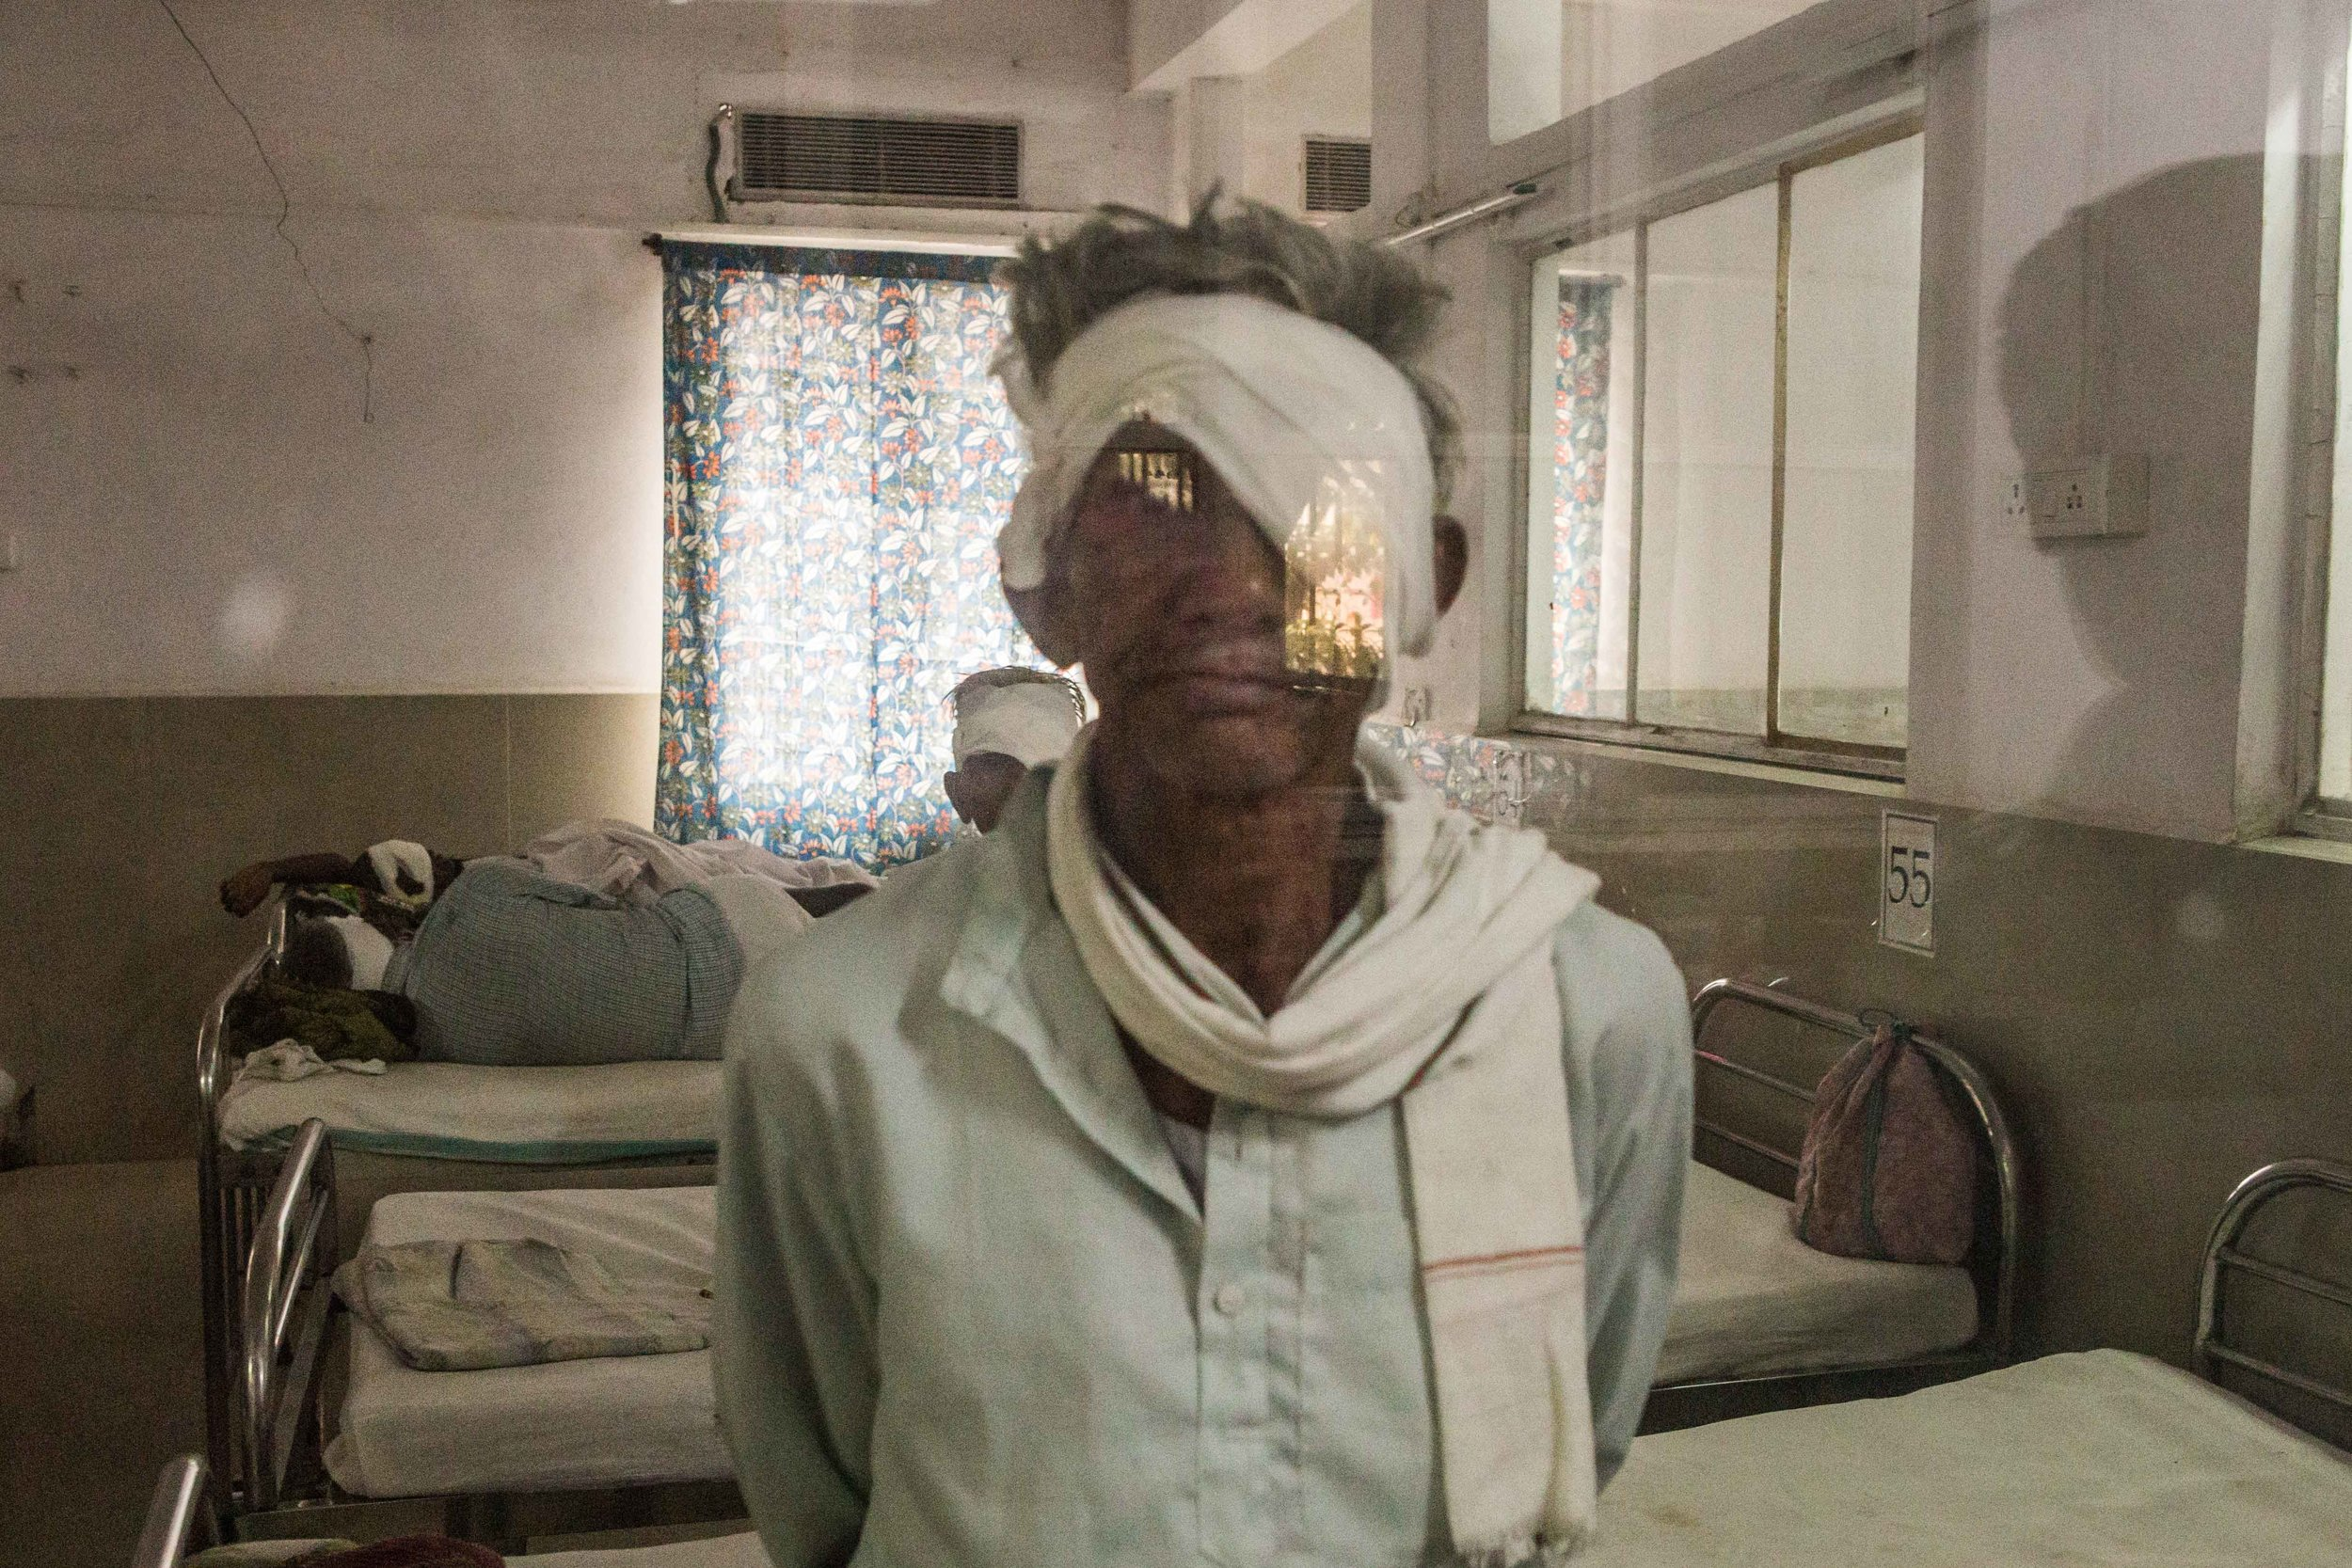 A patient waiting for his discharge after an eye operation. District Hospital Wardha, Maharashtra